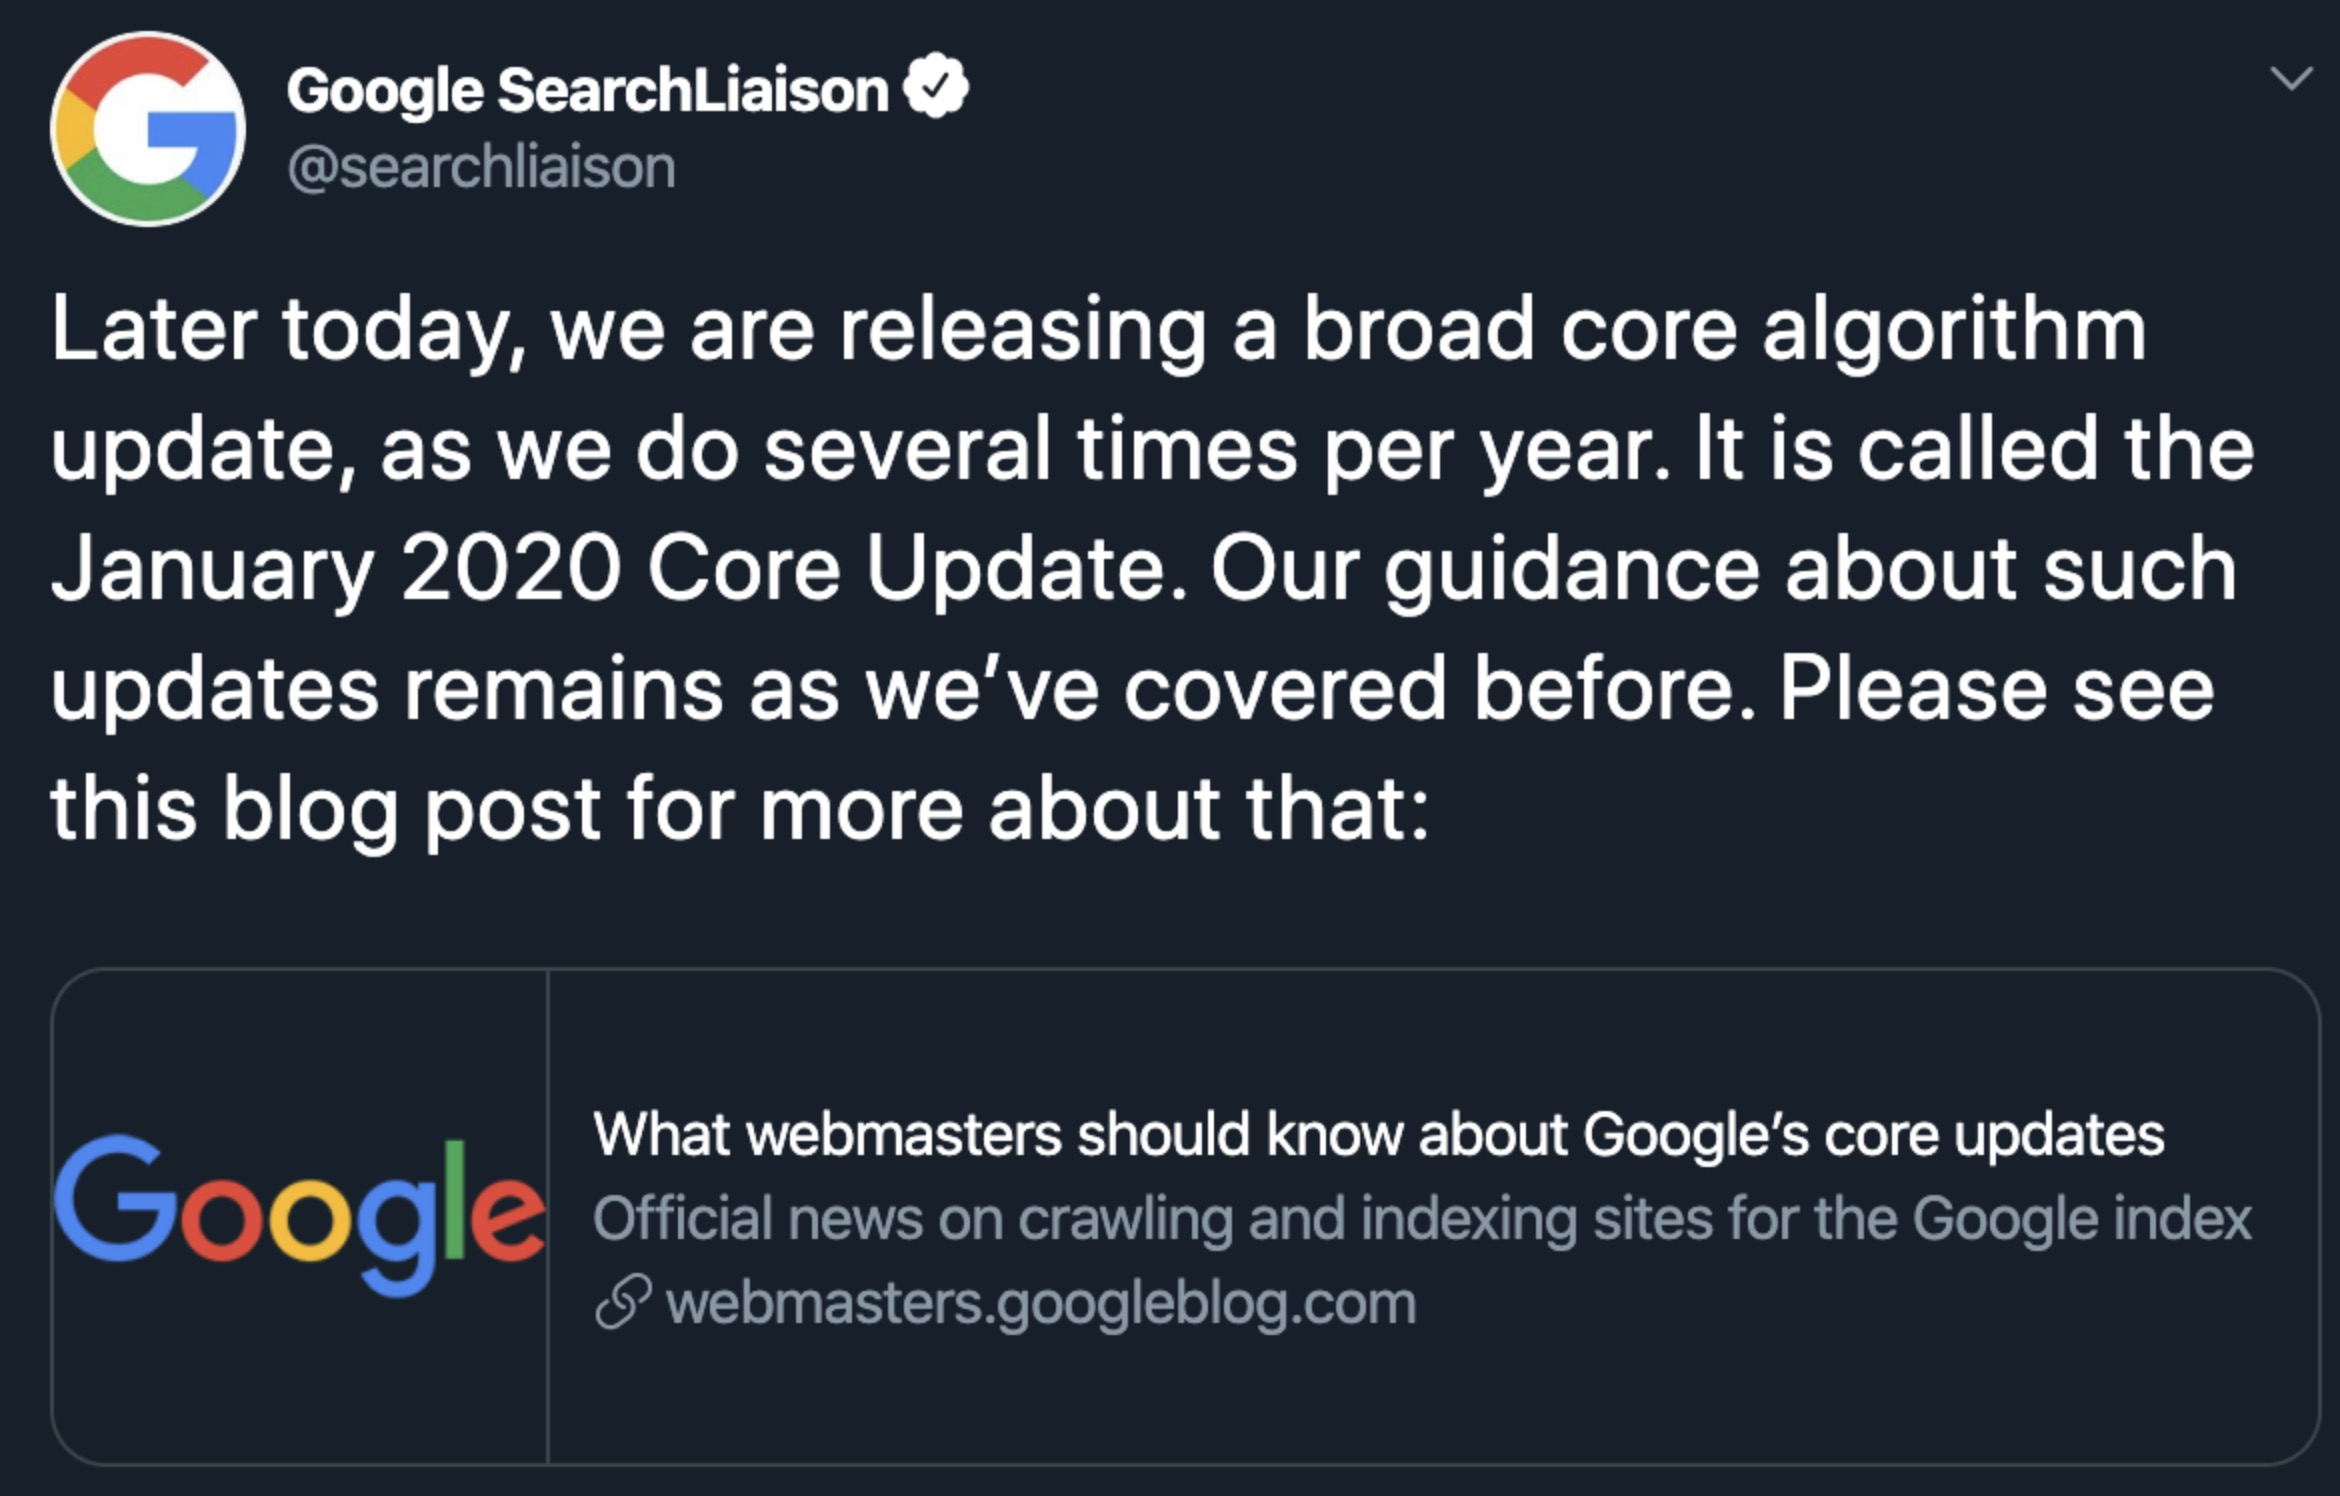 SEO-Friendly Content in 2020 ...